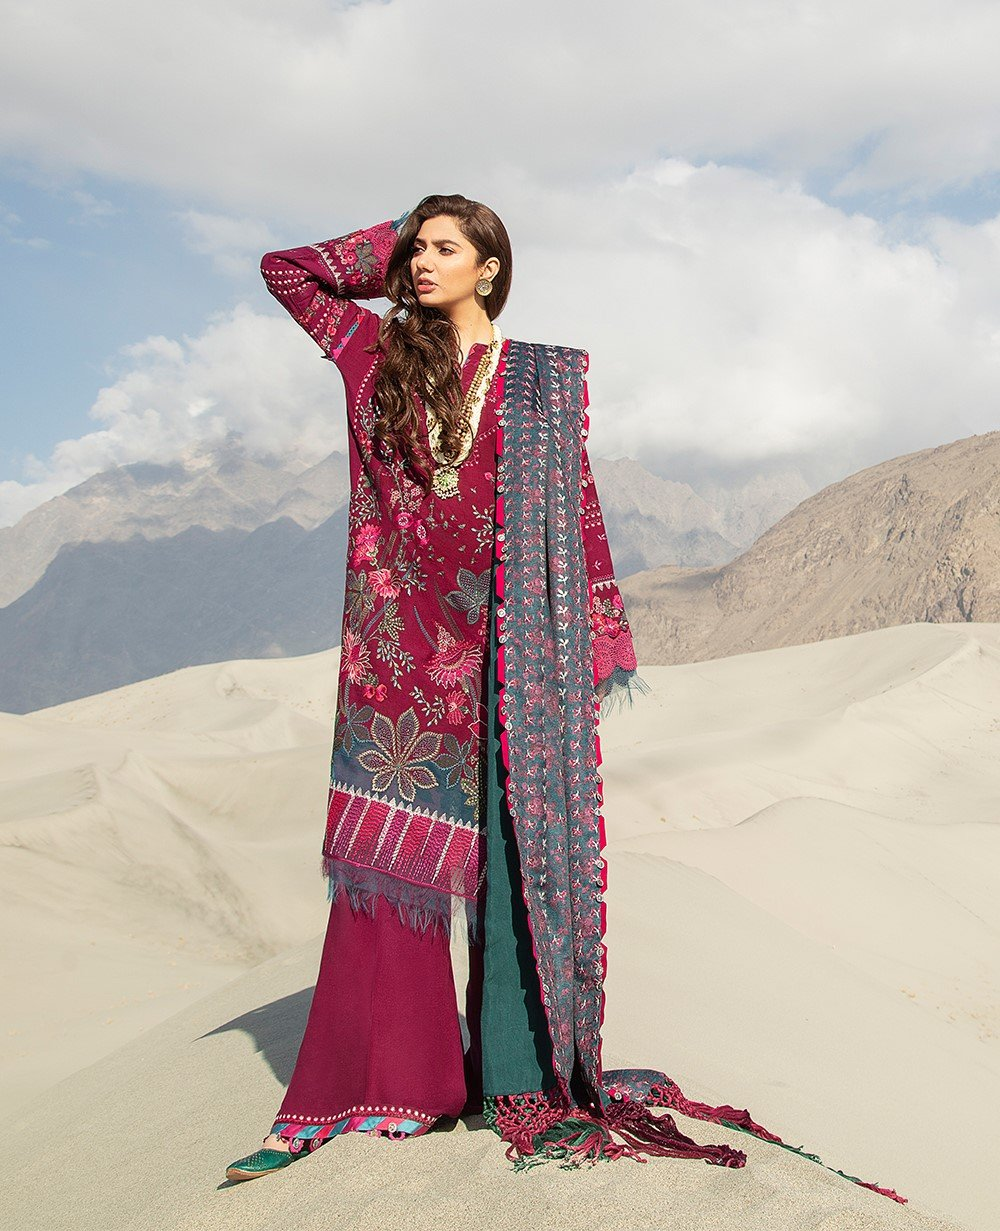 Shop NOW REPUBLIC WOMENSWEAR WINTER COLLECTION 2021- Shigar @ www.LebaasOnline.co.uk  Digital printed Shawl with embroidery, New Indian & Pakistani Designer Partywear Suits in the UK and USA at LebaasOnline. Browse new REPUBLIC WOMENSWEAR WINTER COLLECTION 2021 Wedding Party, Nikah & Walima dresses SALE @ LebaasOnline.